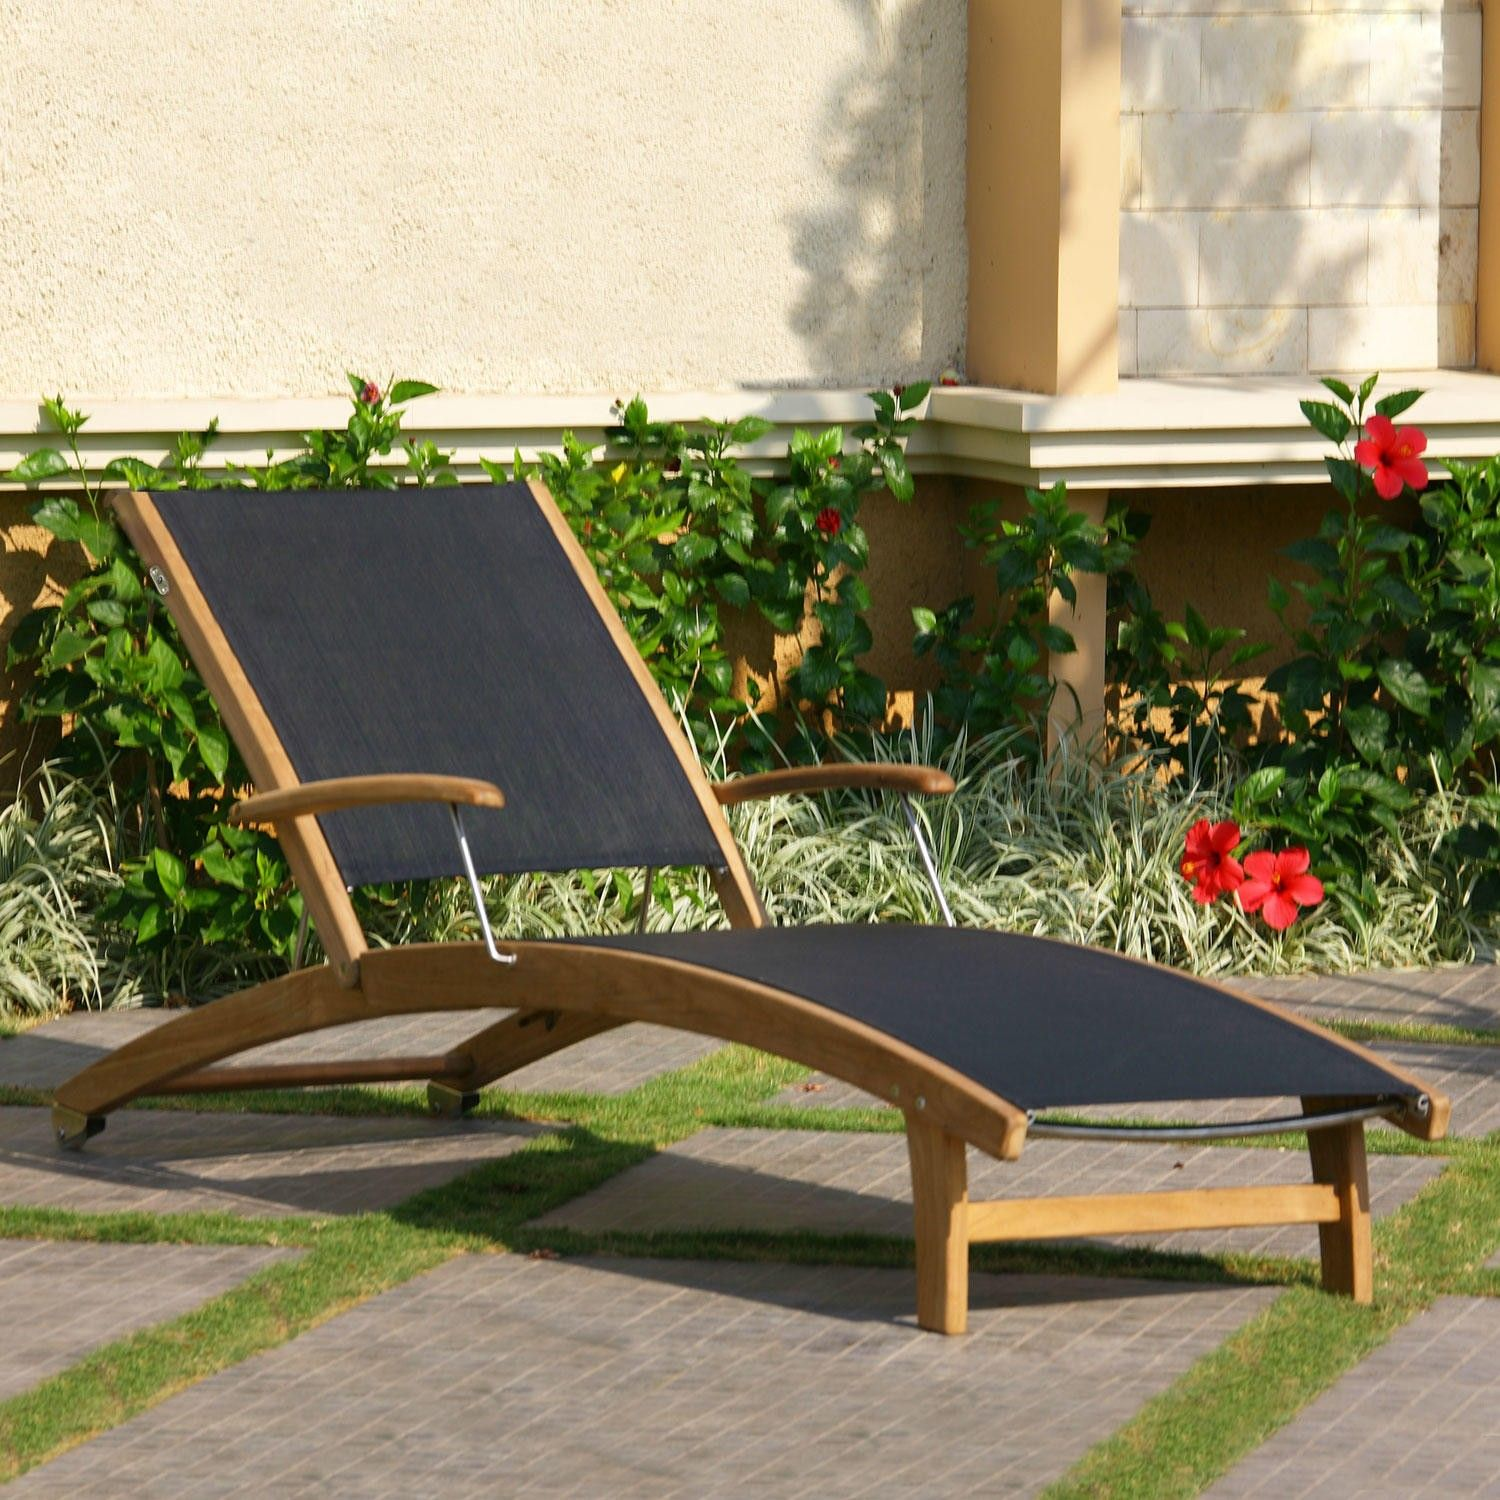 Rivera Teak Sling Lounge Chair Outdoor Chaise Lounges Outdoor Furniture Outdoor Lounge Chair Outdoor Teak Chaise Lounge Pool Patio Furniture